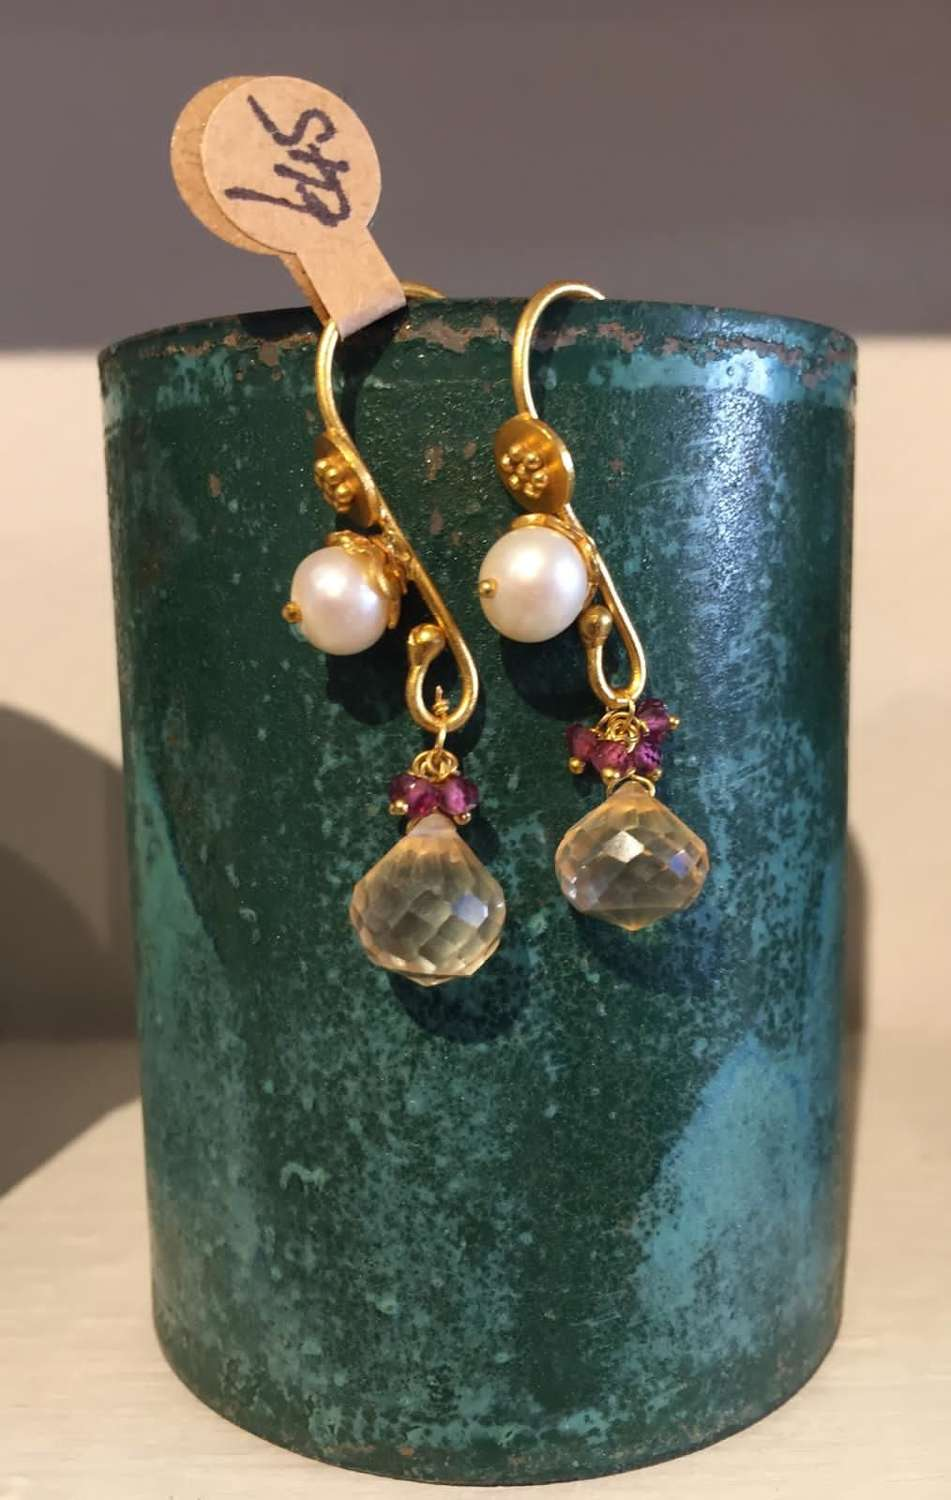 Indian gold earrings with pearl and semi precious stones